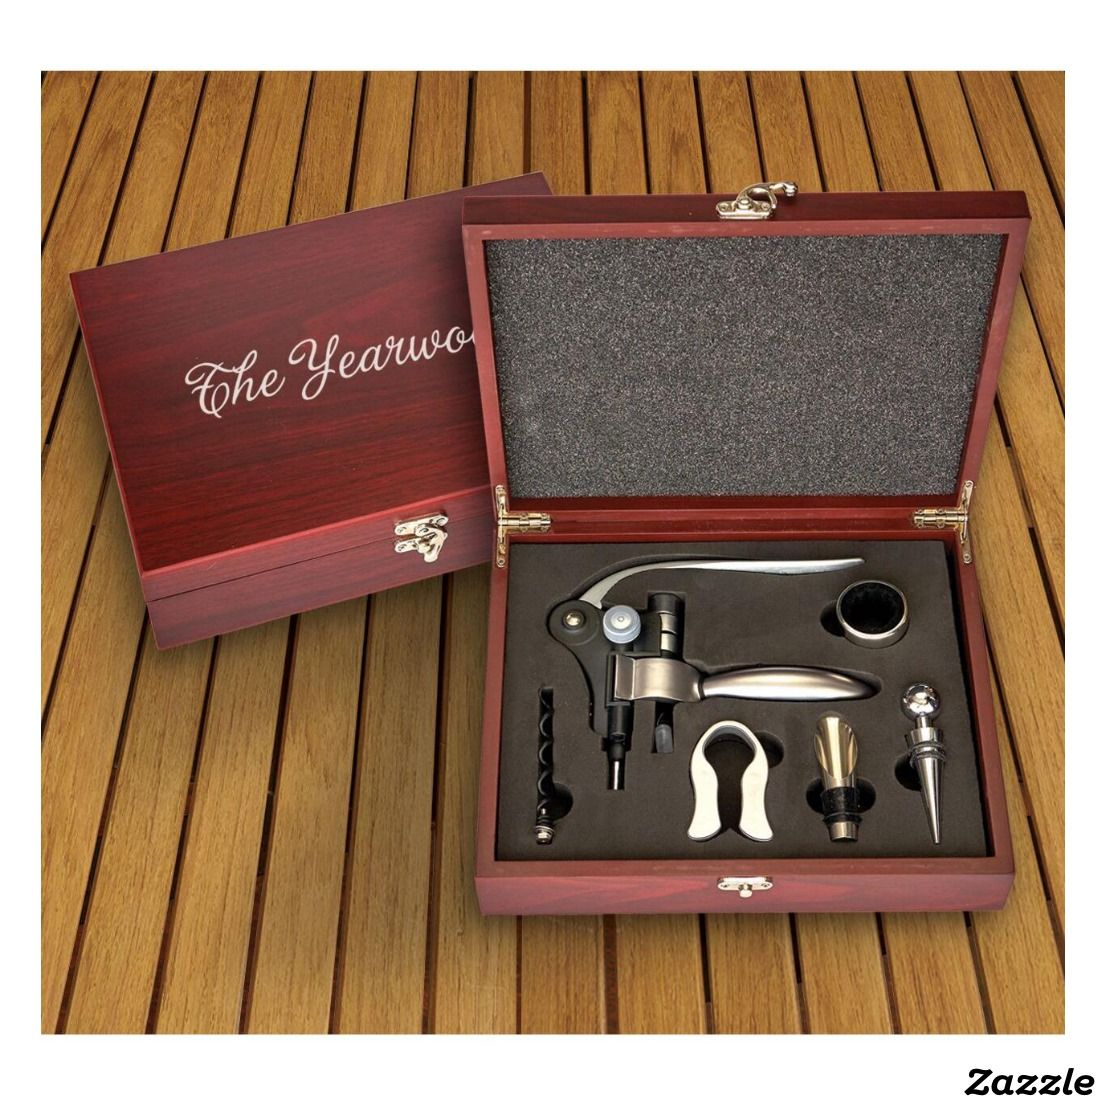 Engraved Wooden Box Set With Wine Bottle Opener Zazzle Com Wine Bottle Opener Engraved Wooden Boxes Engraved Wine Bottle Opener